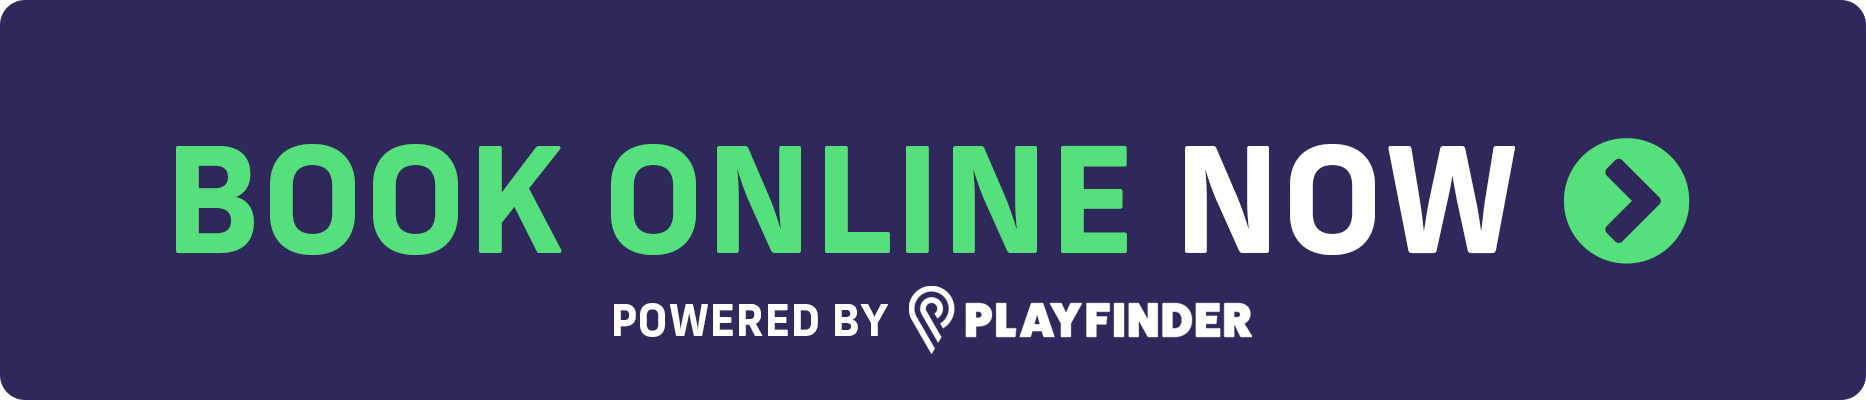 book online now – powered by playfinder